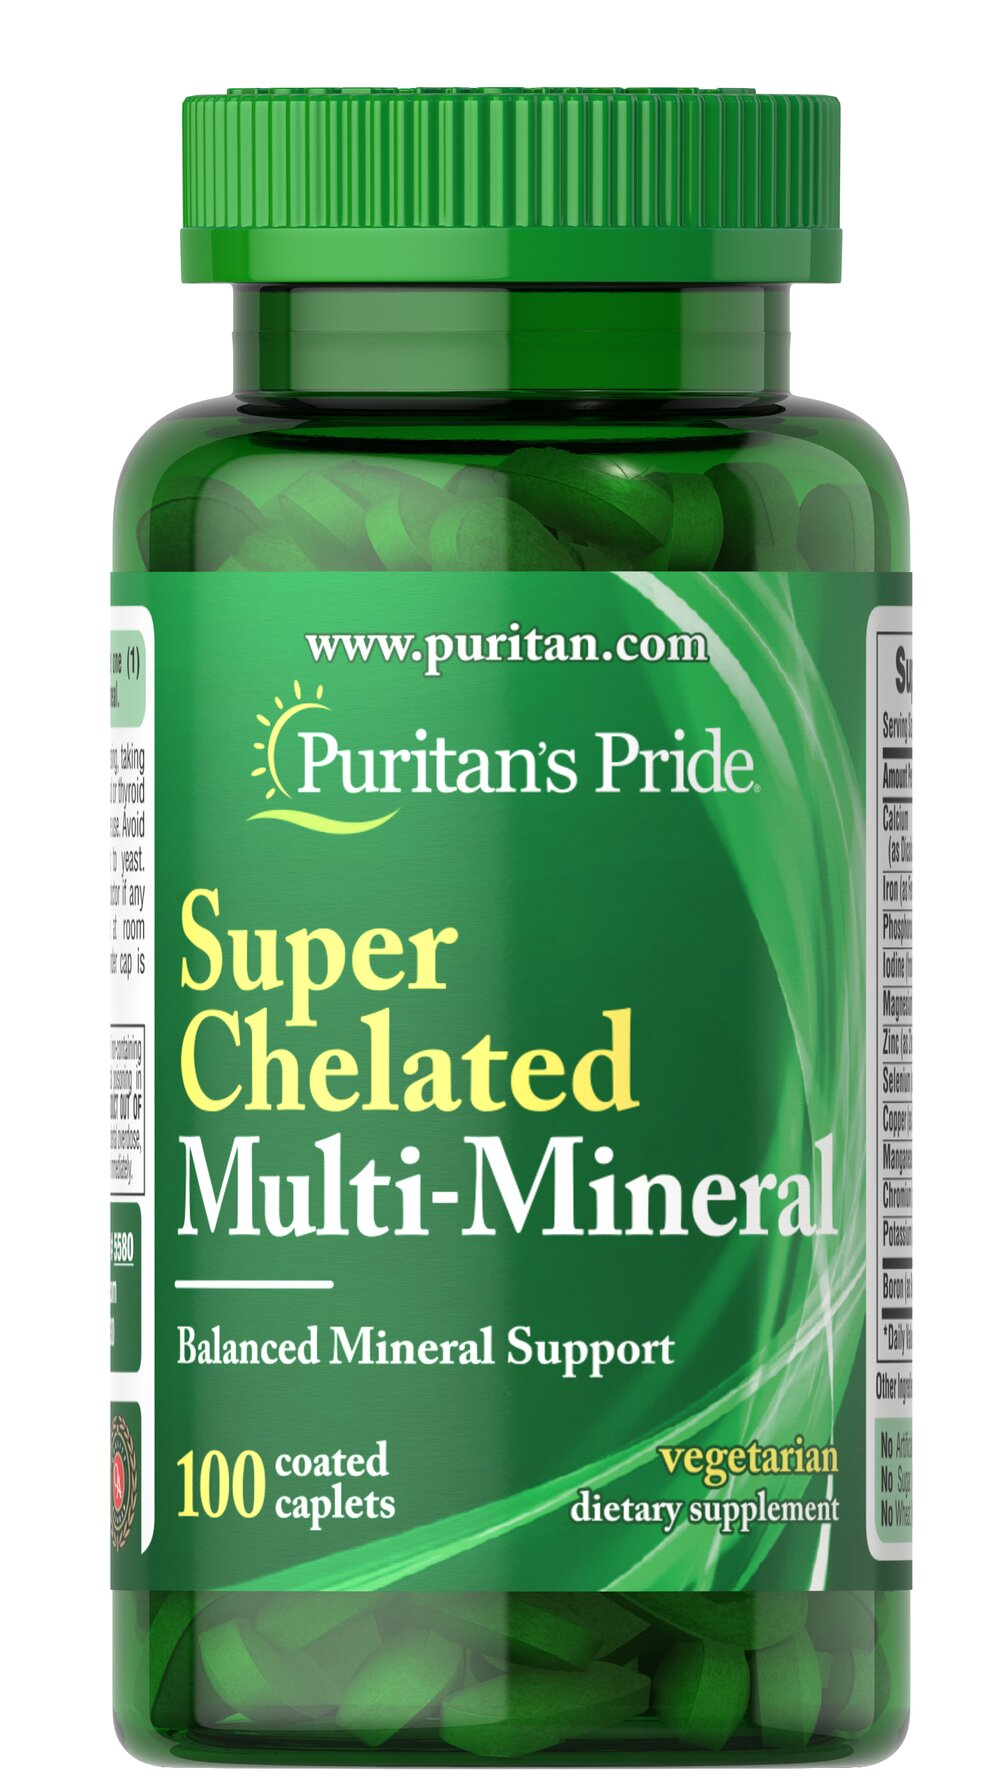 Super Chelated Multi Mineral <p>In Super Chelated Multi-Mineral, we combine over 10 major and trace minerals into a comprehensive mineral blend. Super Chelated Multi-Mineral contains a nutritional treasure chest including Calcium and Magnesium, which play essential roles in maintaining proper bone mineralization, Zinc, which helps support immune function and Boron, which plays a role in bone metabolism.**</p> 100 Coated Caplets  $14.99